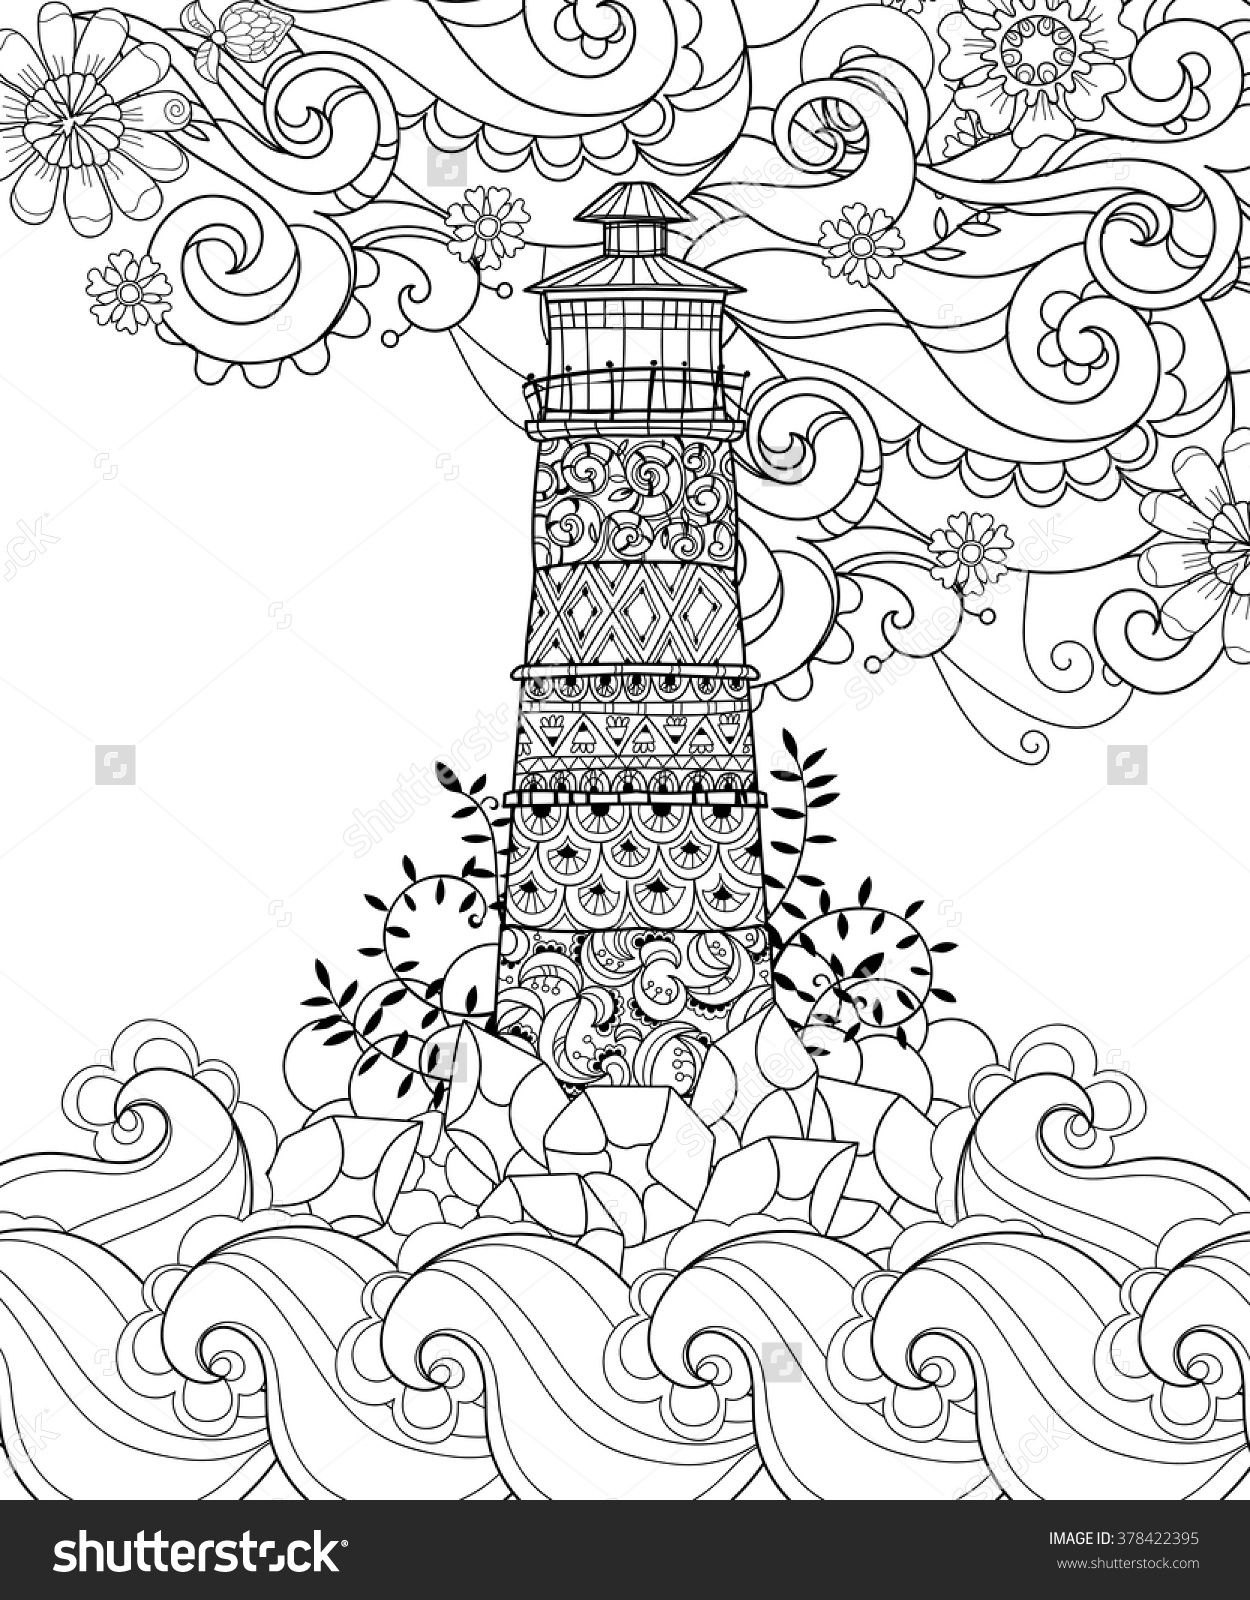 Shutterstock Coloring Pages  Download 12n - Save it to your computer